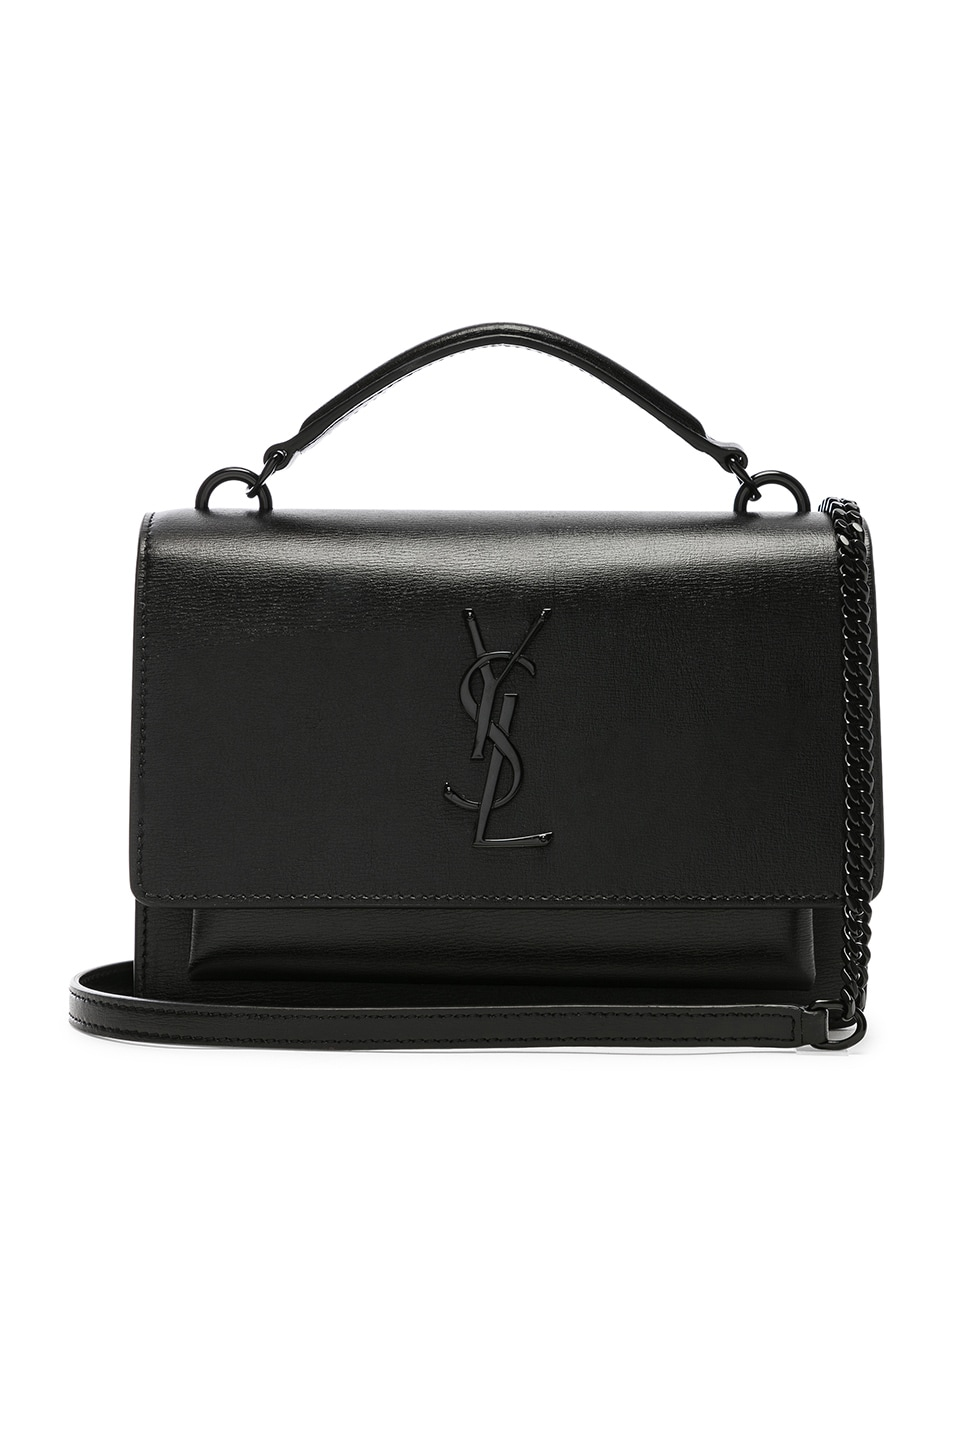 Image 1 of Saint Laurent Sunset Monogramme Bag in Black